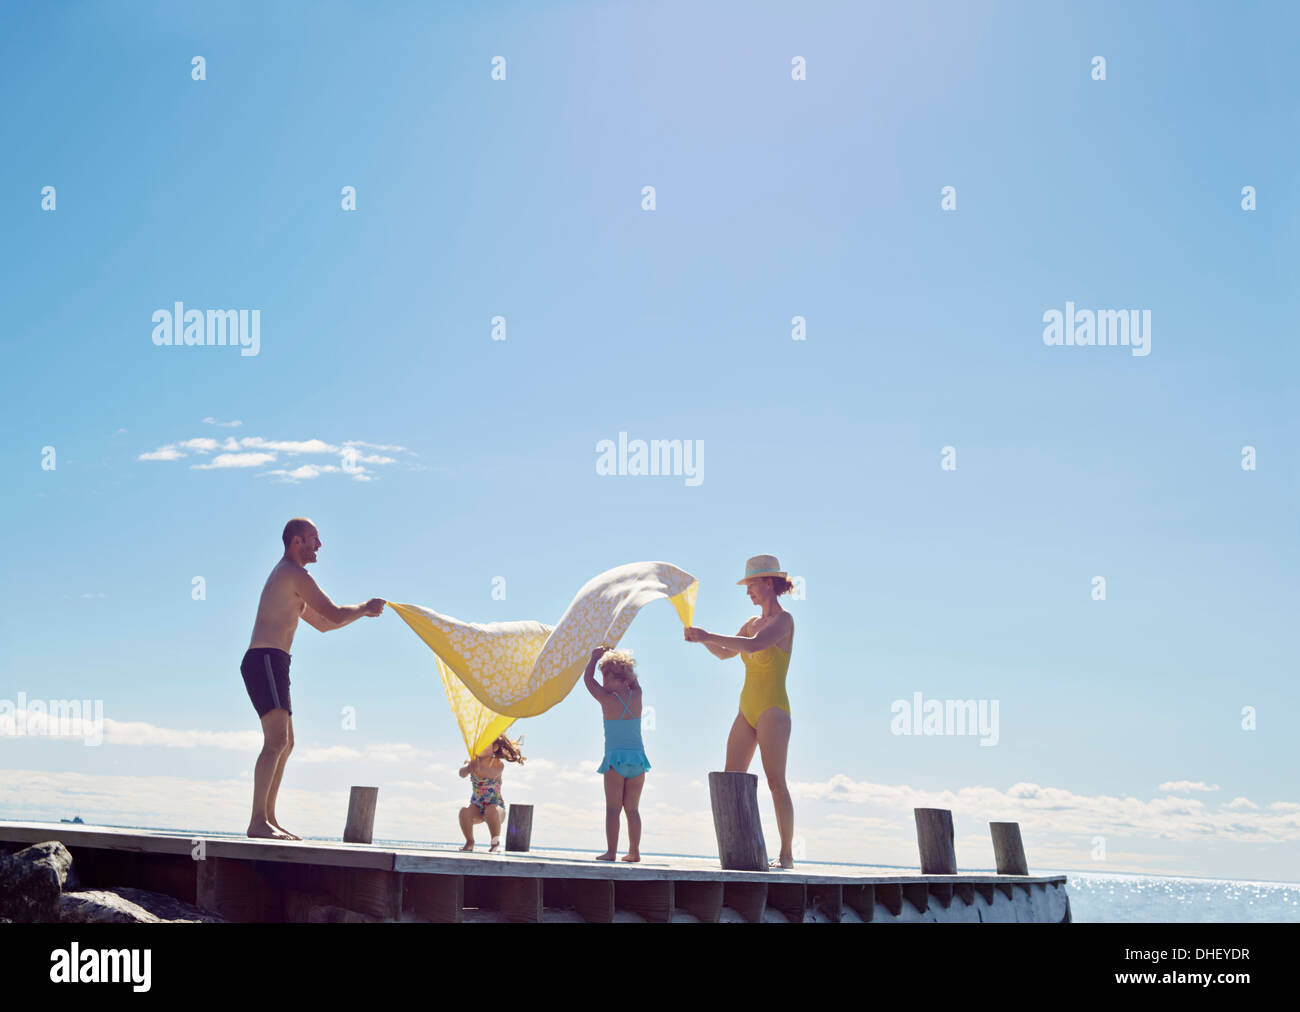 Young family having fun on pier, Utvalnas, Gavle, Sweden - Stock Image